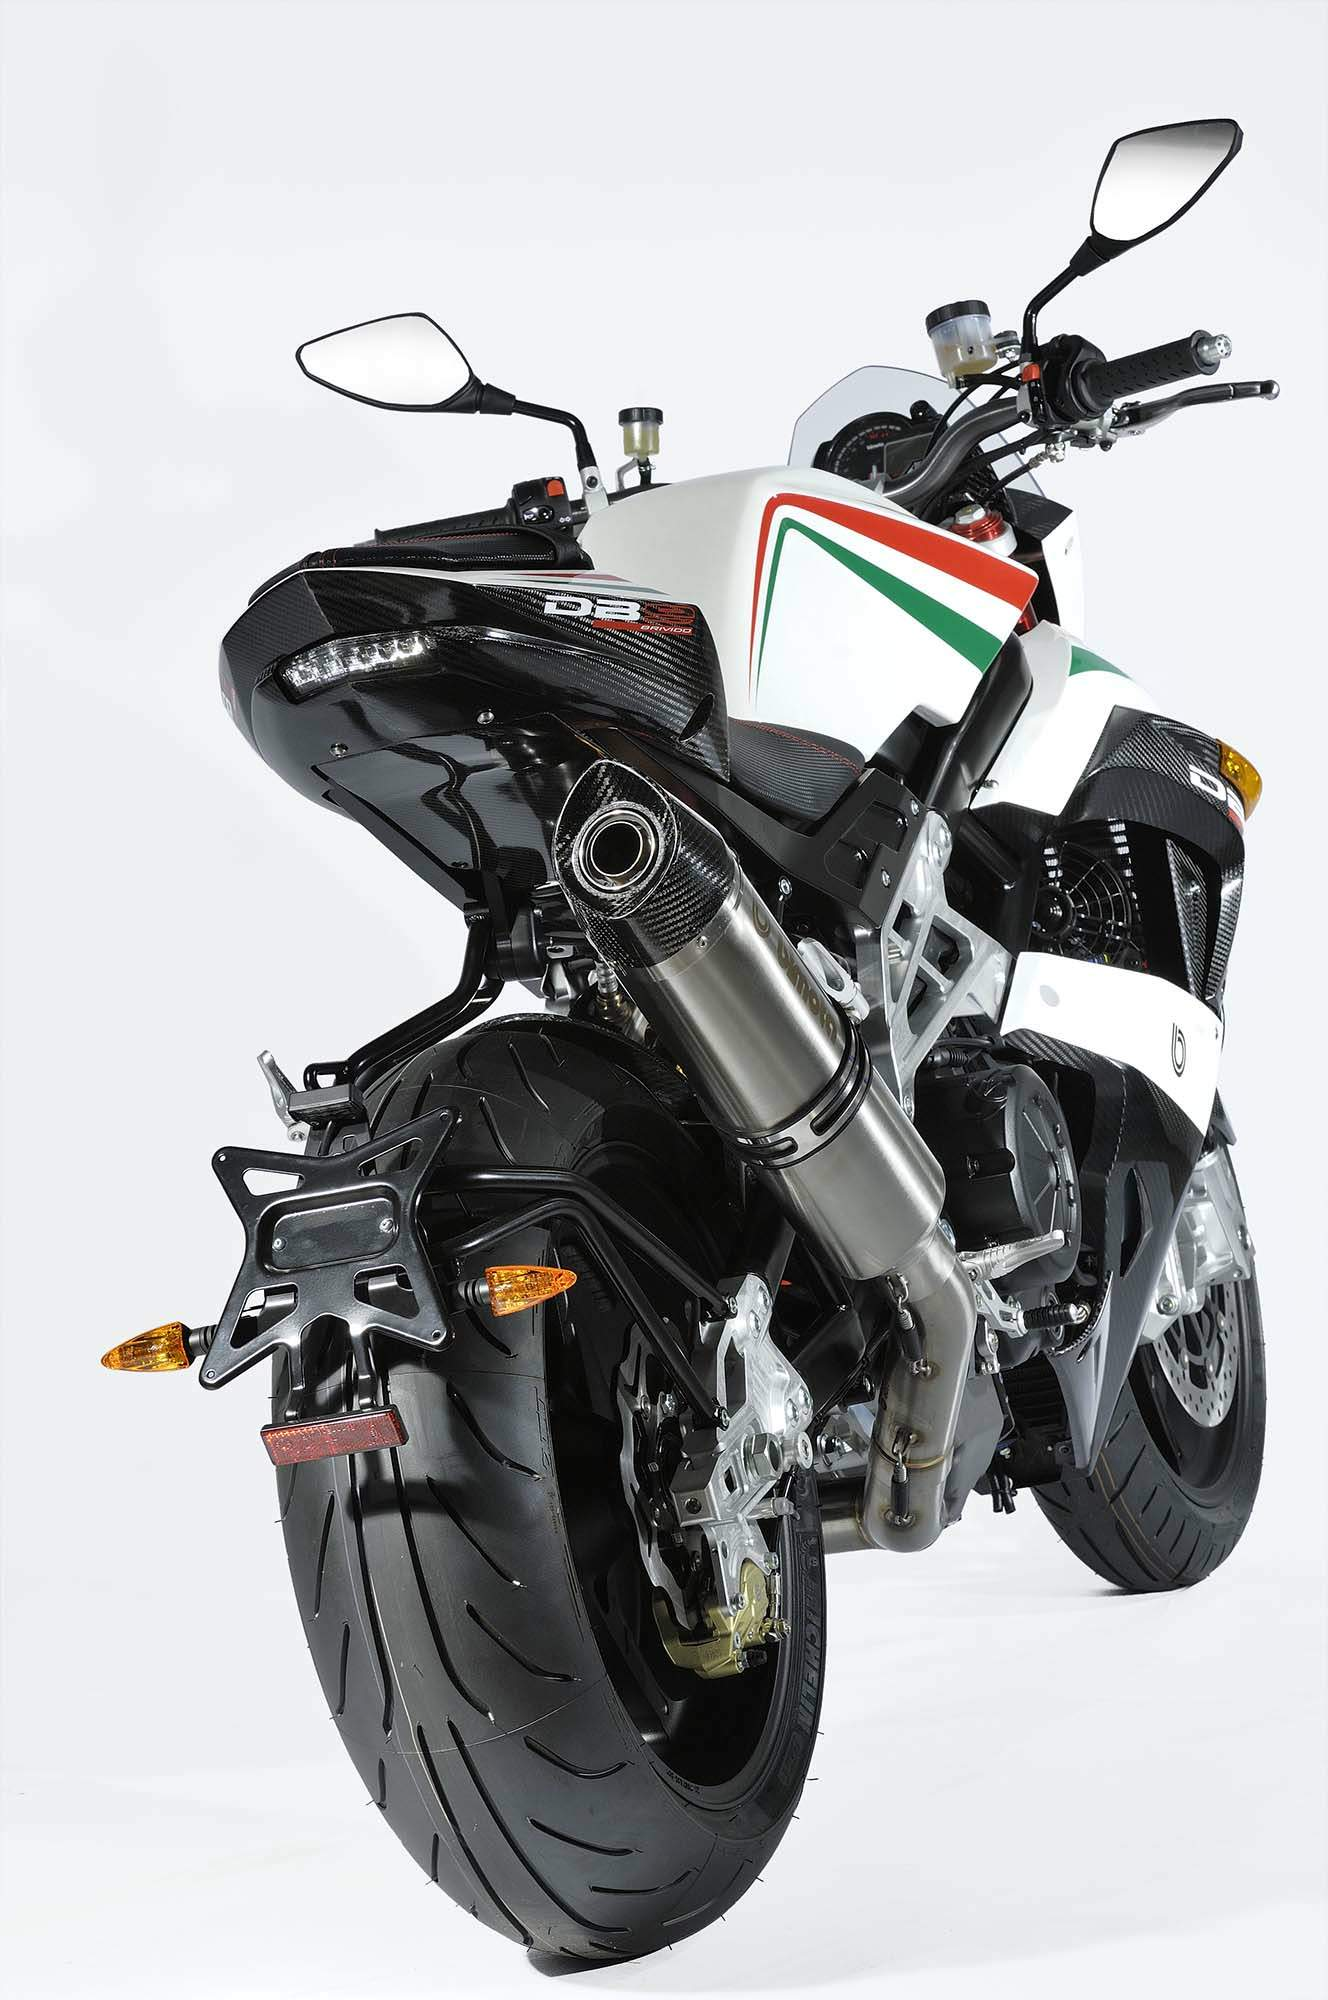 Bimota db9 photo - 2